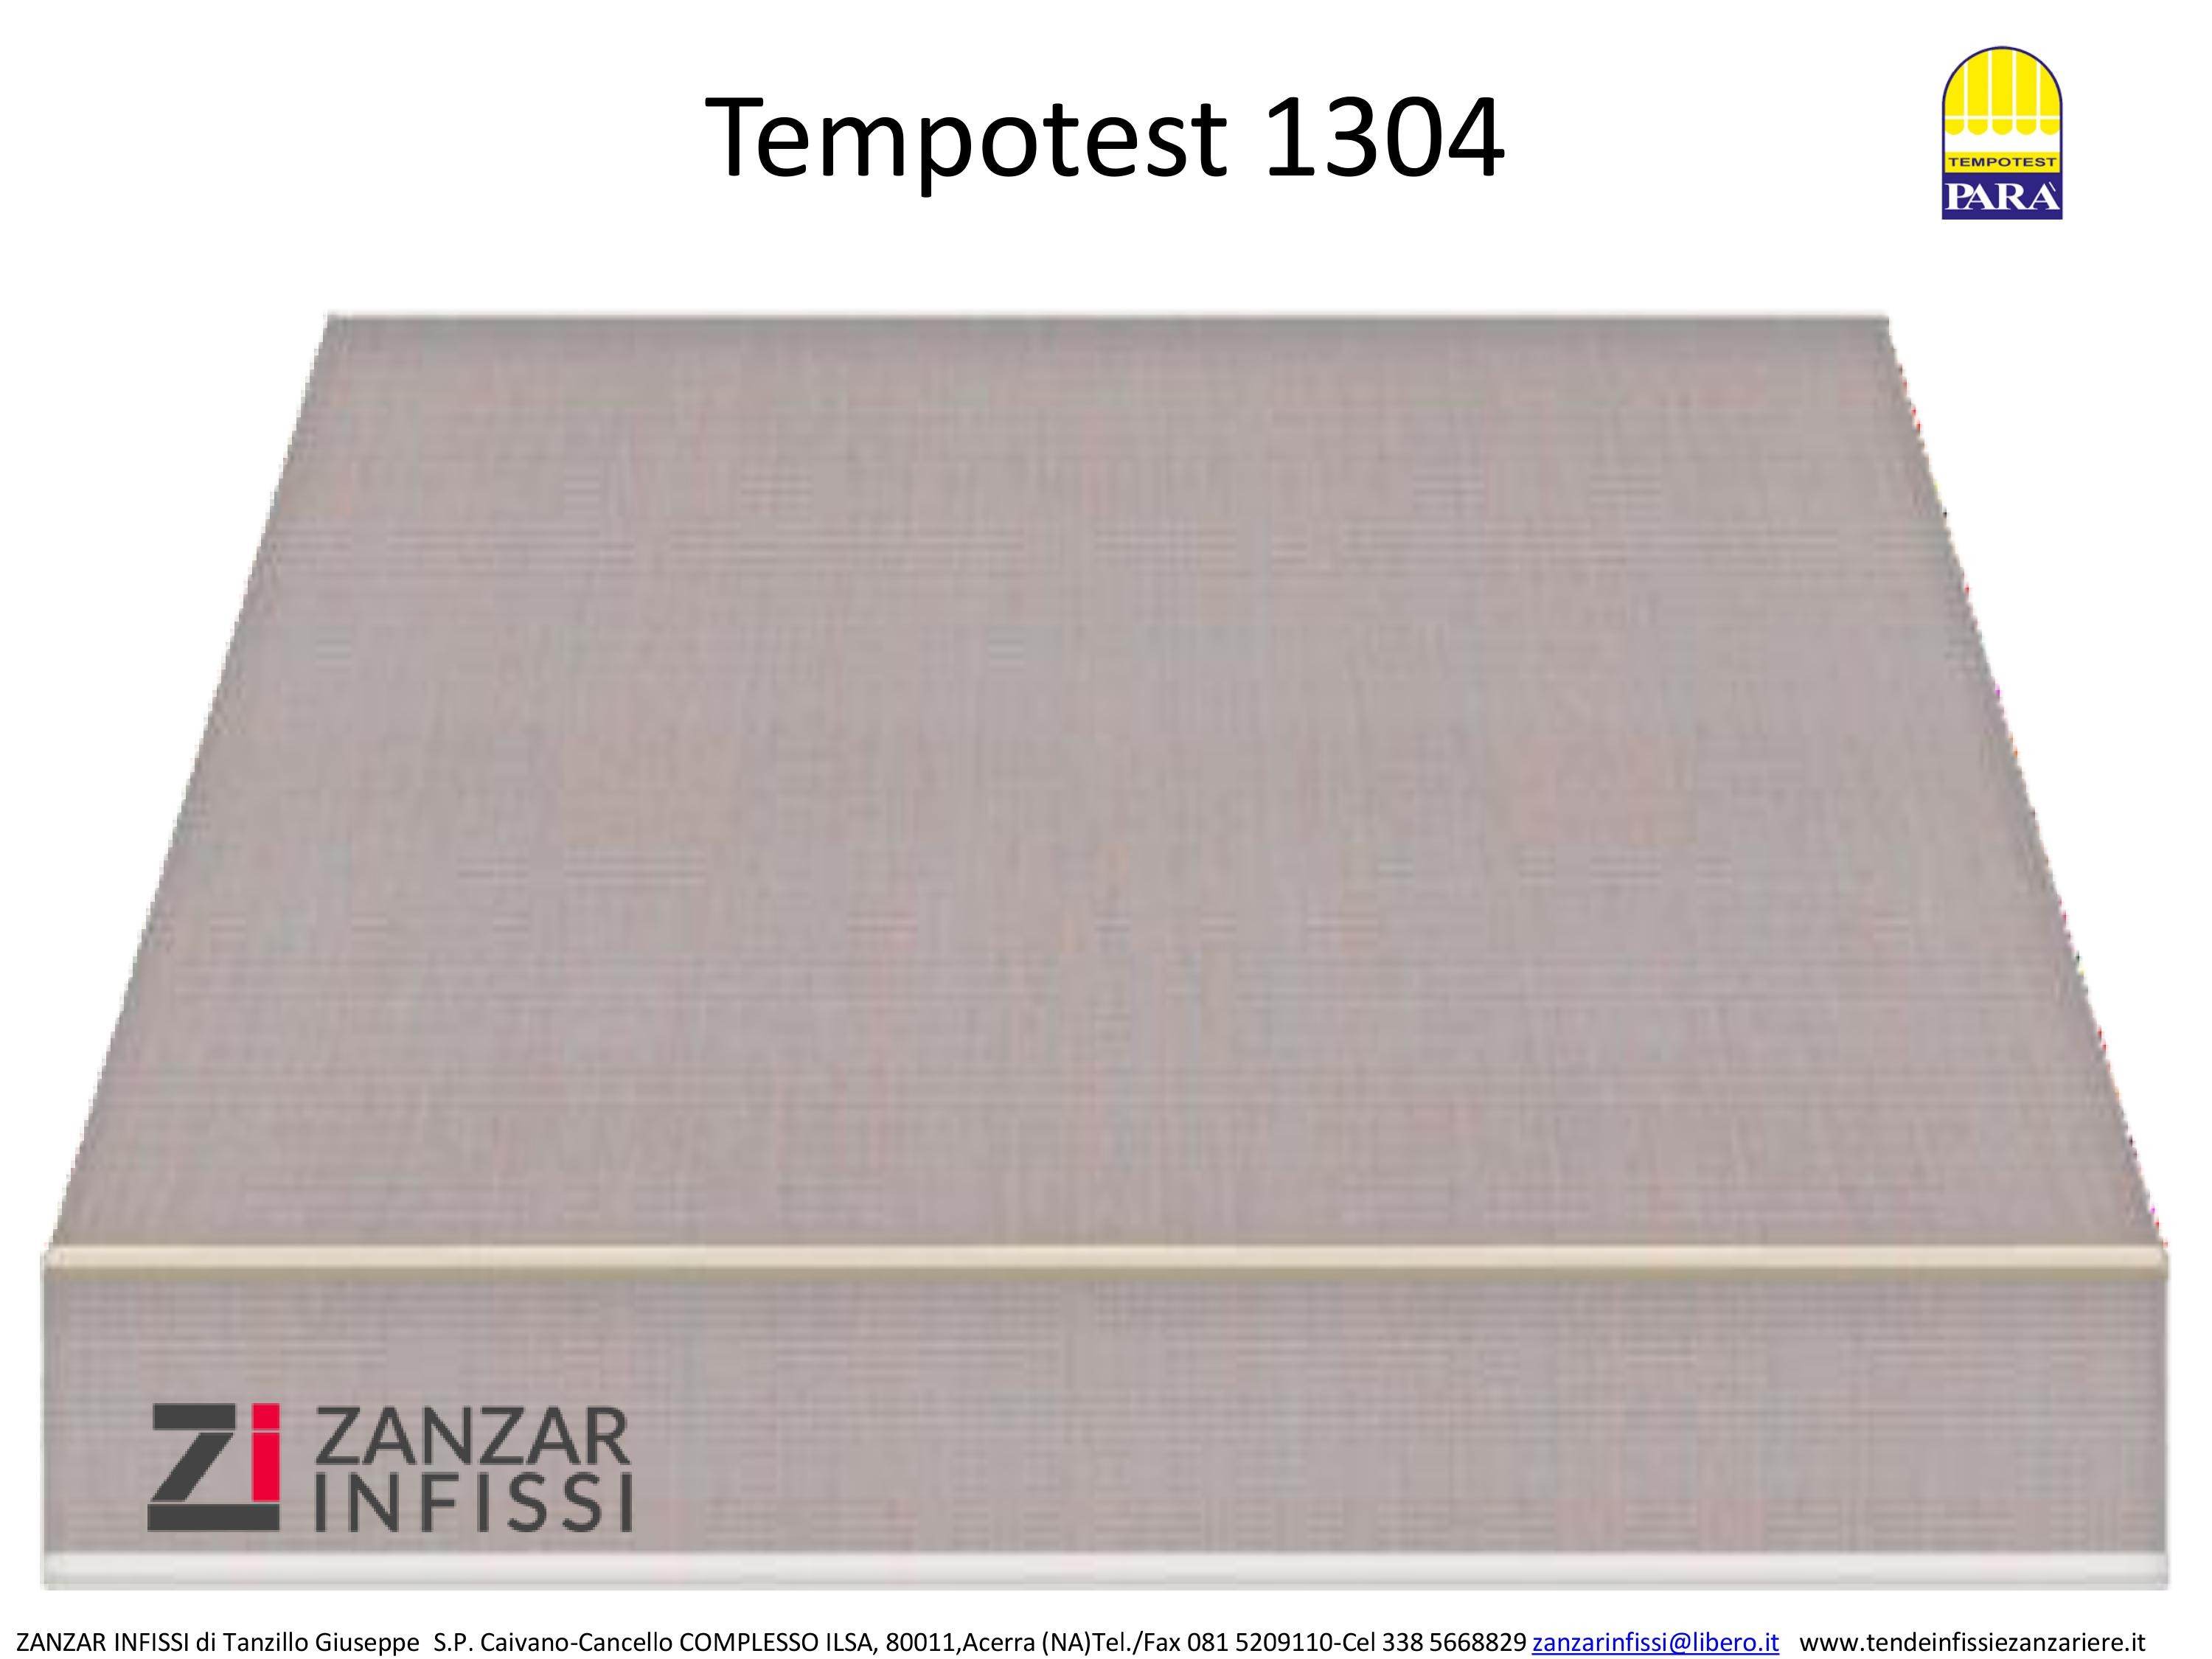 Tempotest 1304